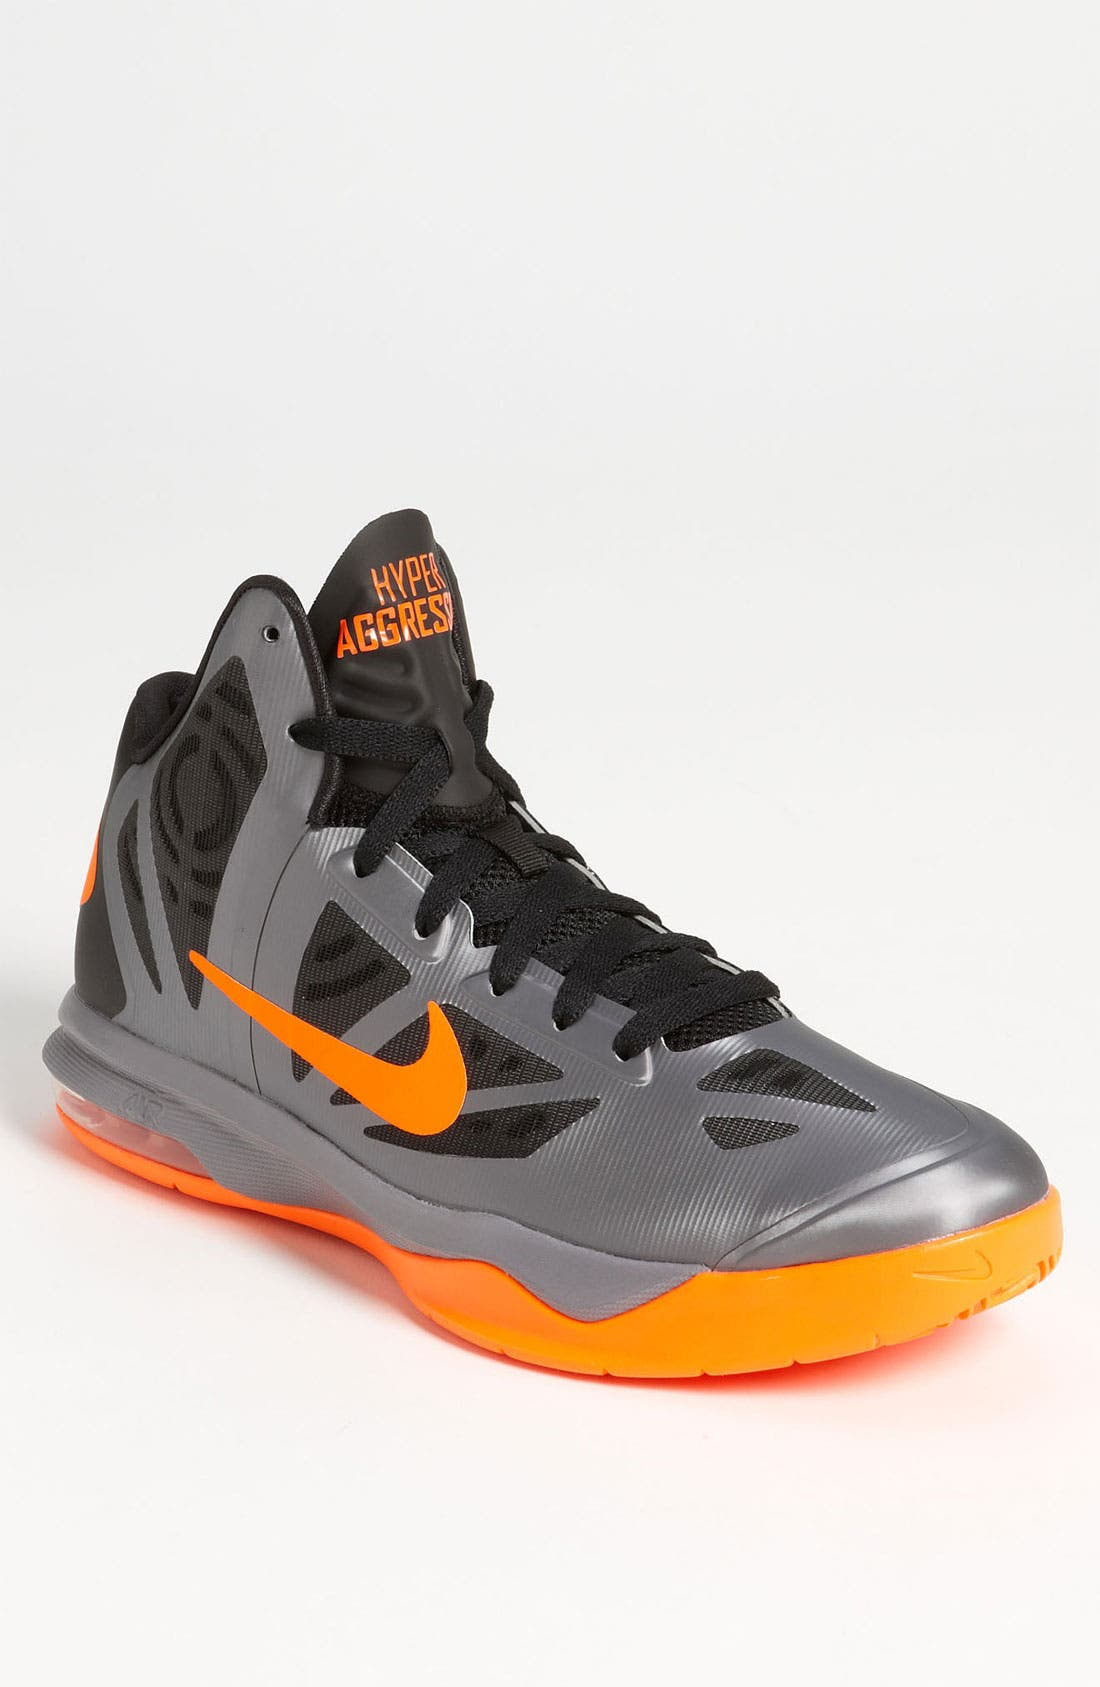 Alternate Image 1 Selected - Nike 'Air Max HyperAggressor' Basketball Shoe (Men)